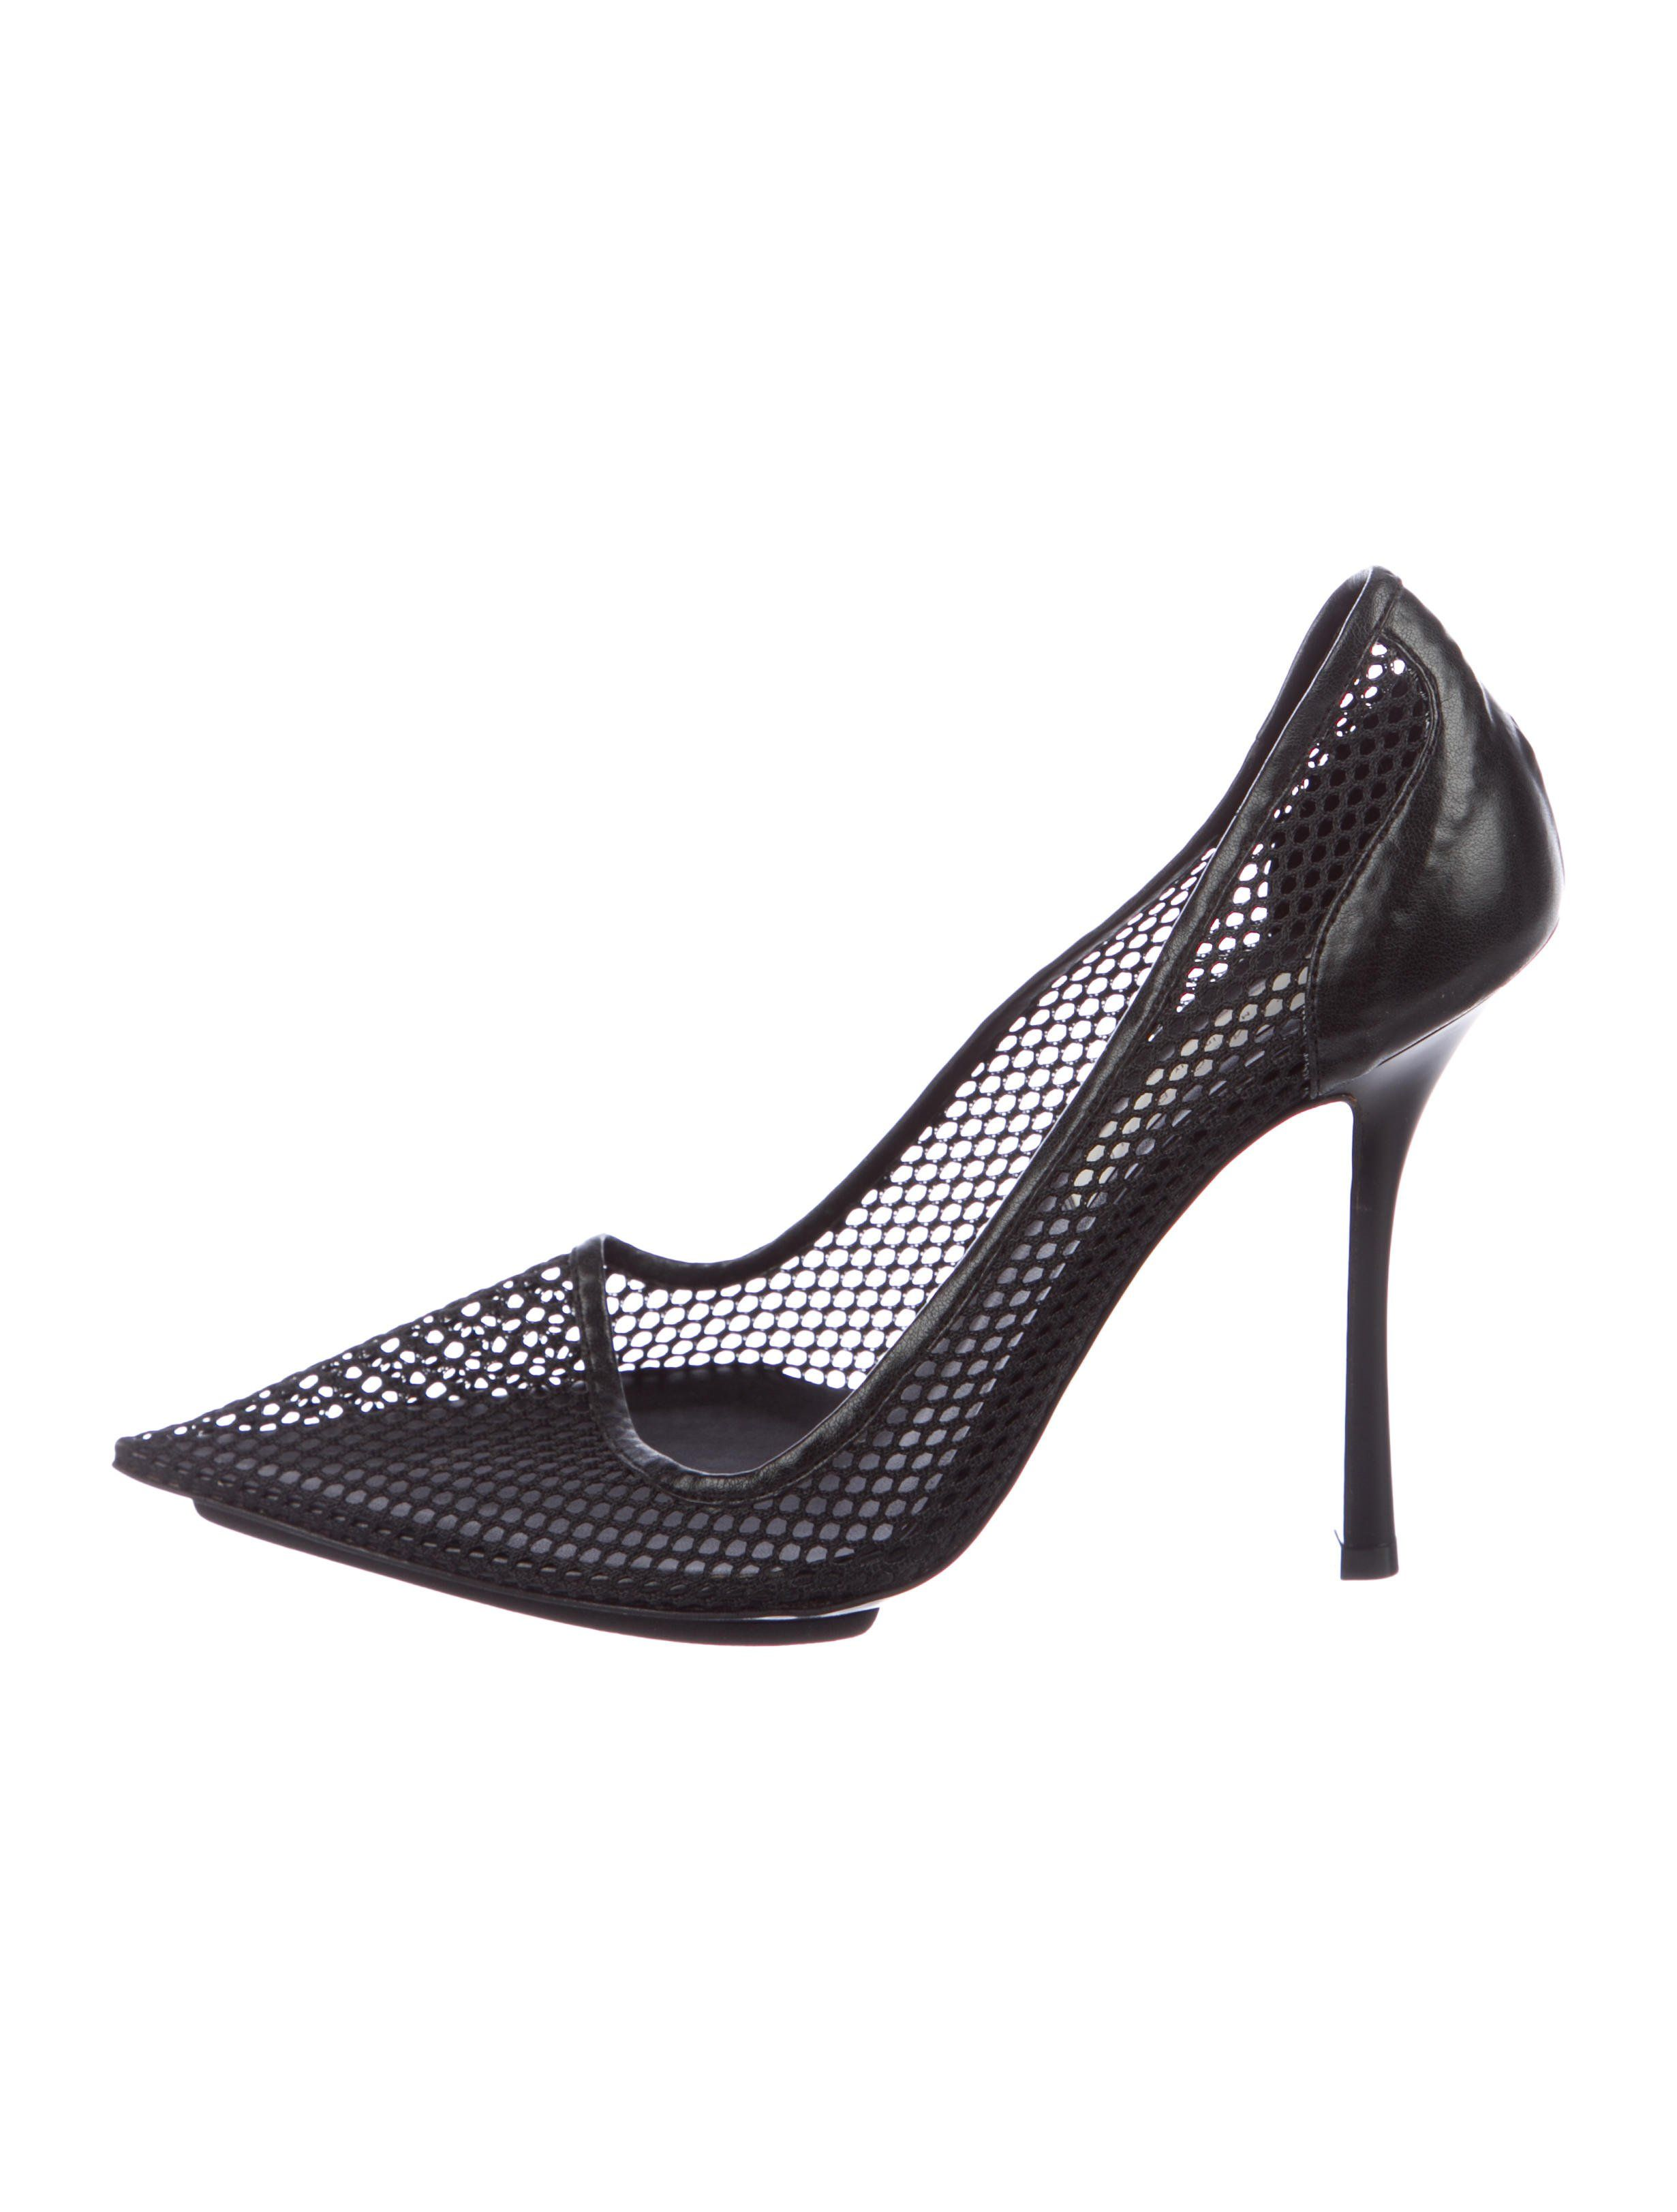 ac4c570eec Stella McCartney Mesh Pointed-Toe Pumps - Shoes - STL72825 | The ...